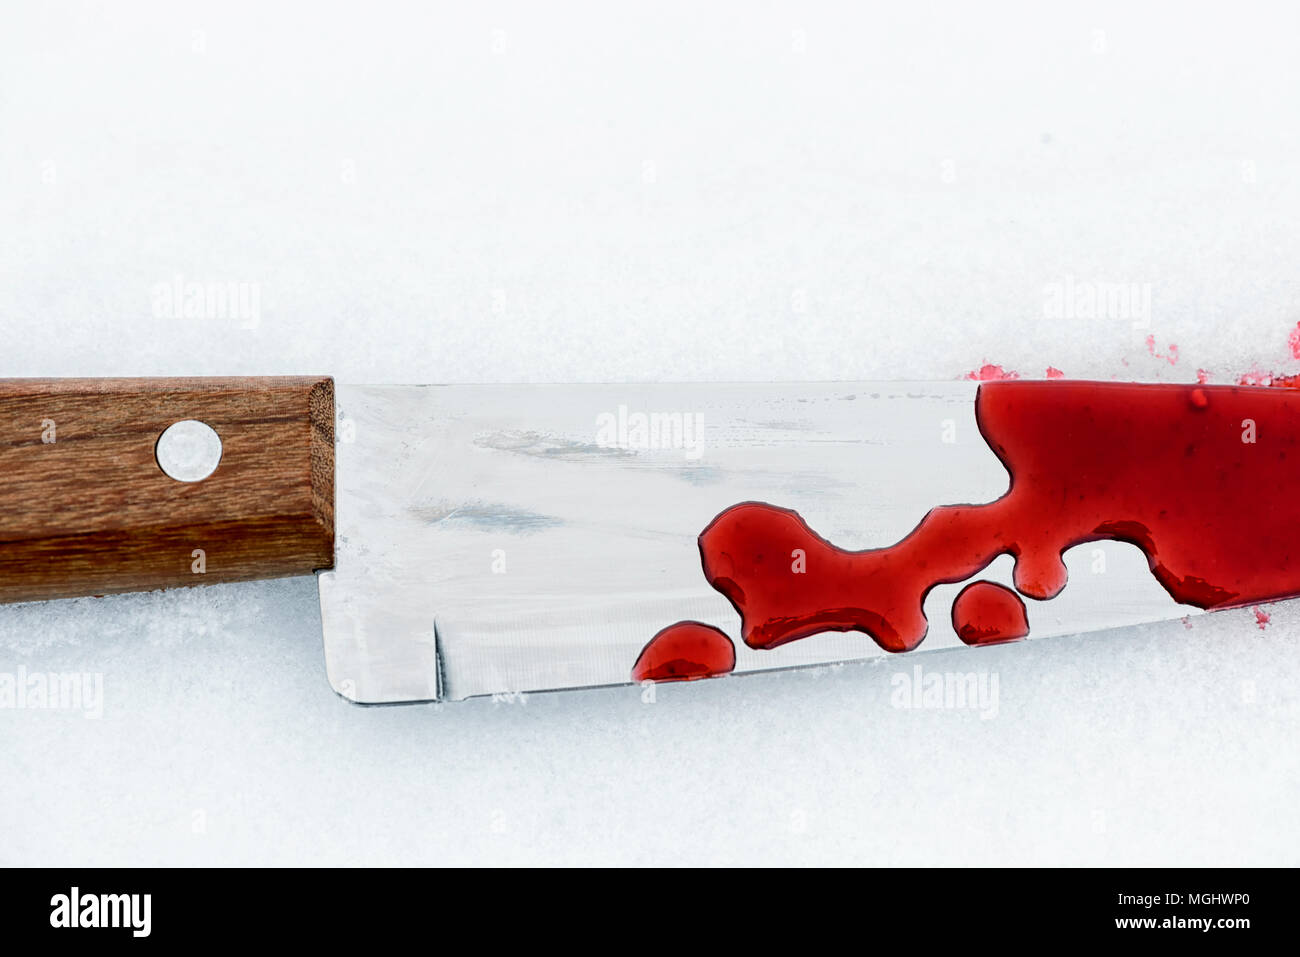 Sharp metal kitchen knife edge used as a violent murder weapon with blood drops on a white snow background. Blade covered in violence with copy space  - Stock Image